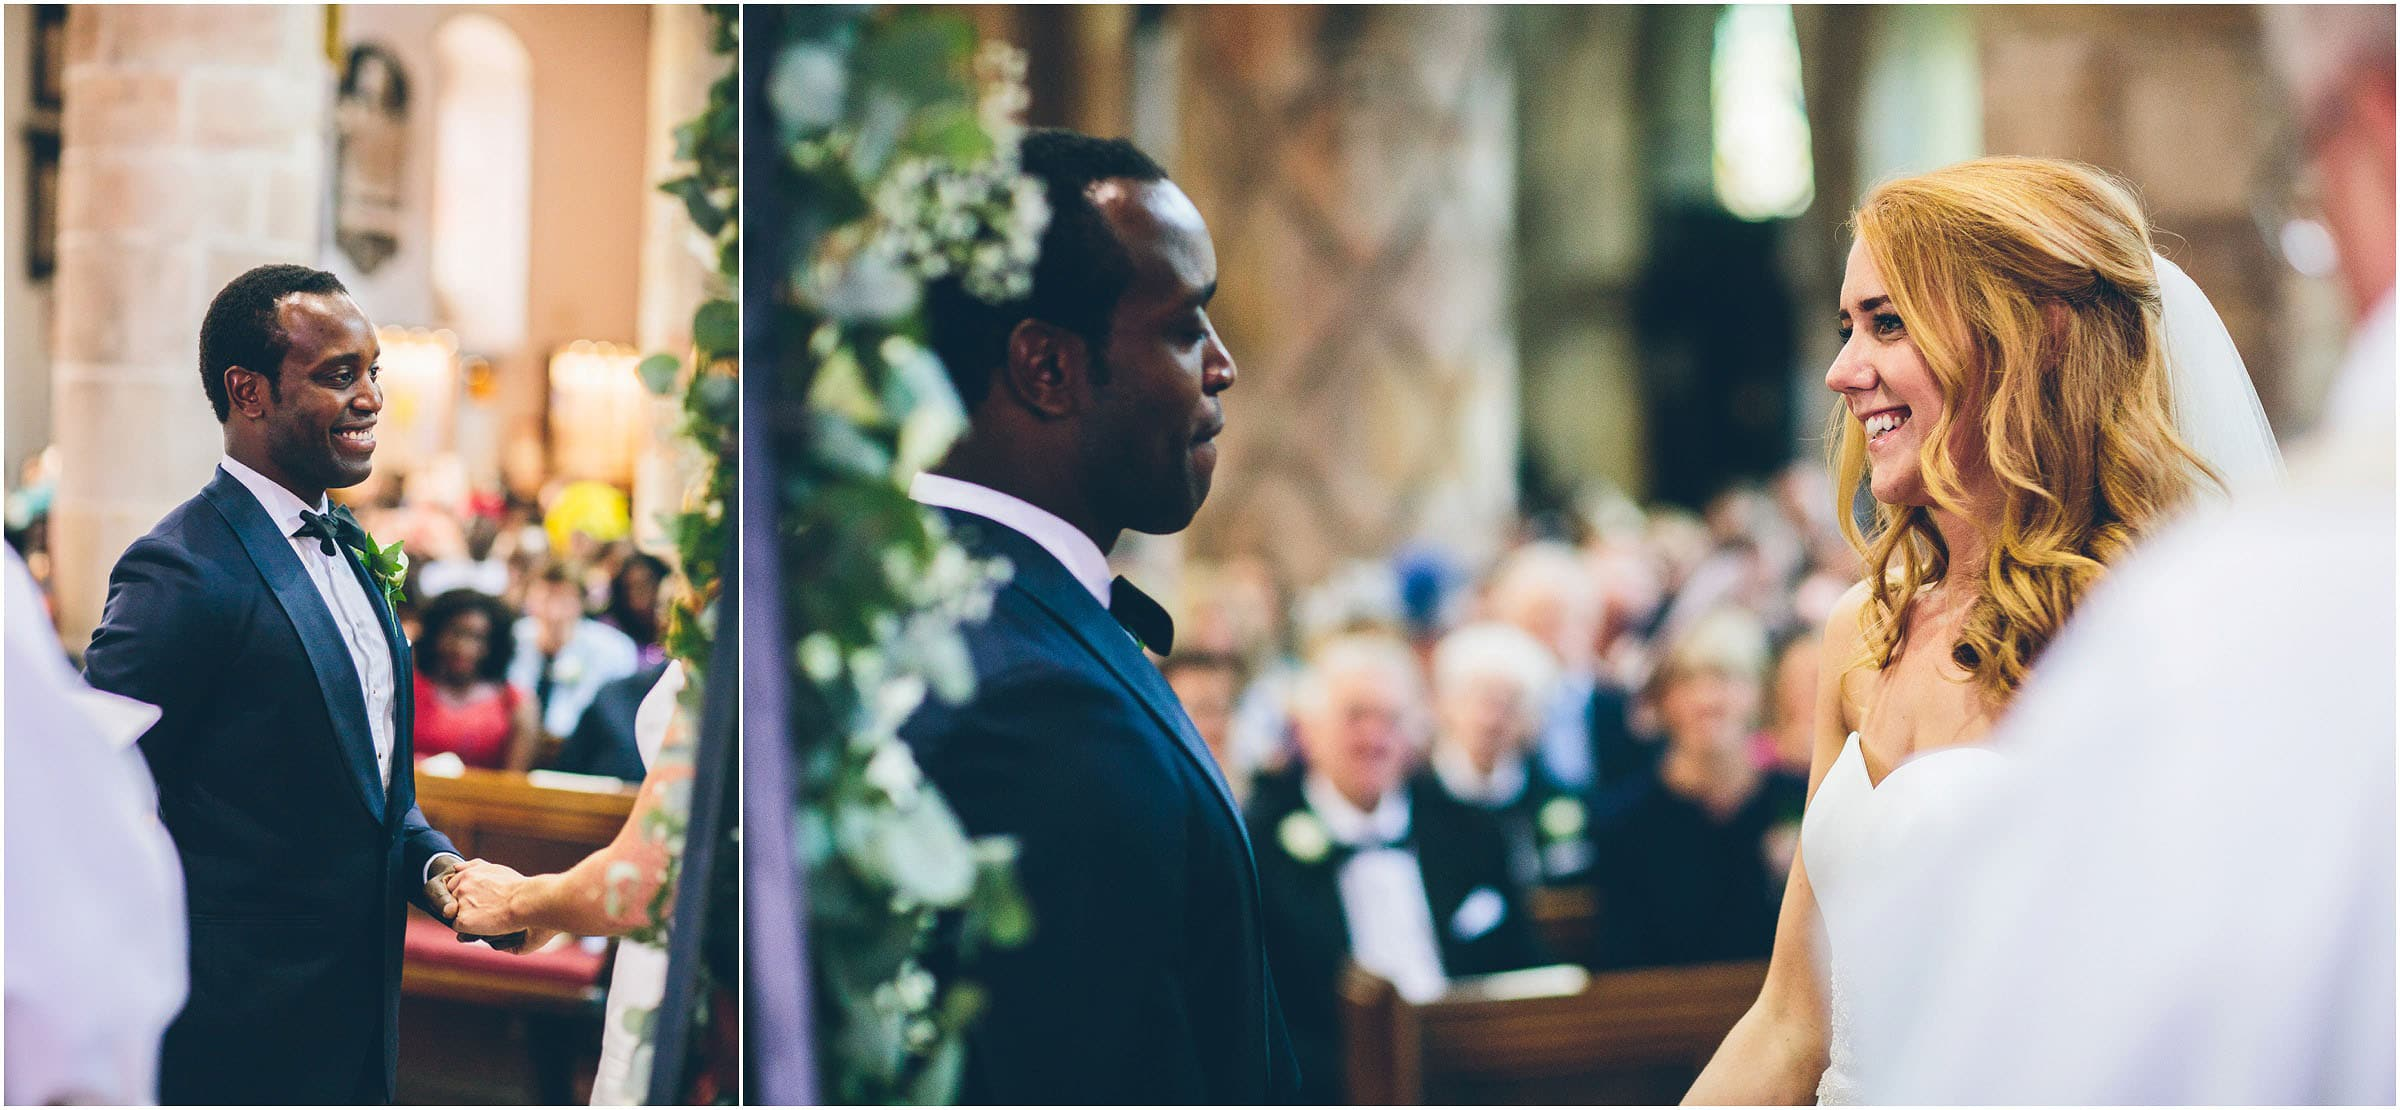 Underley_Grange_Wedding_Photography_0060